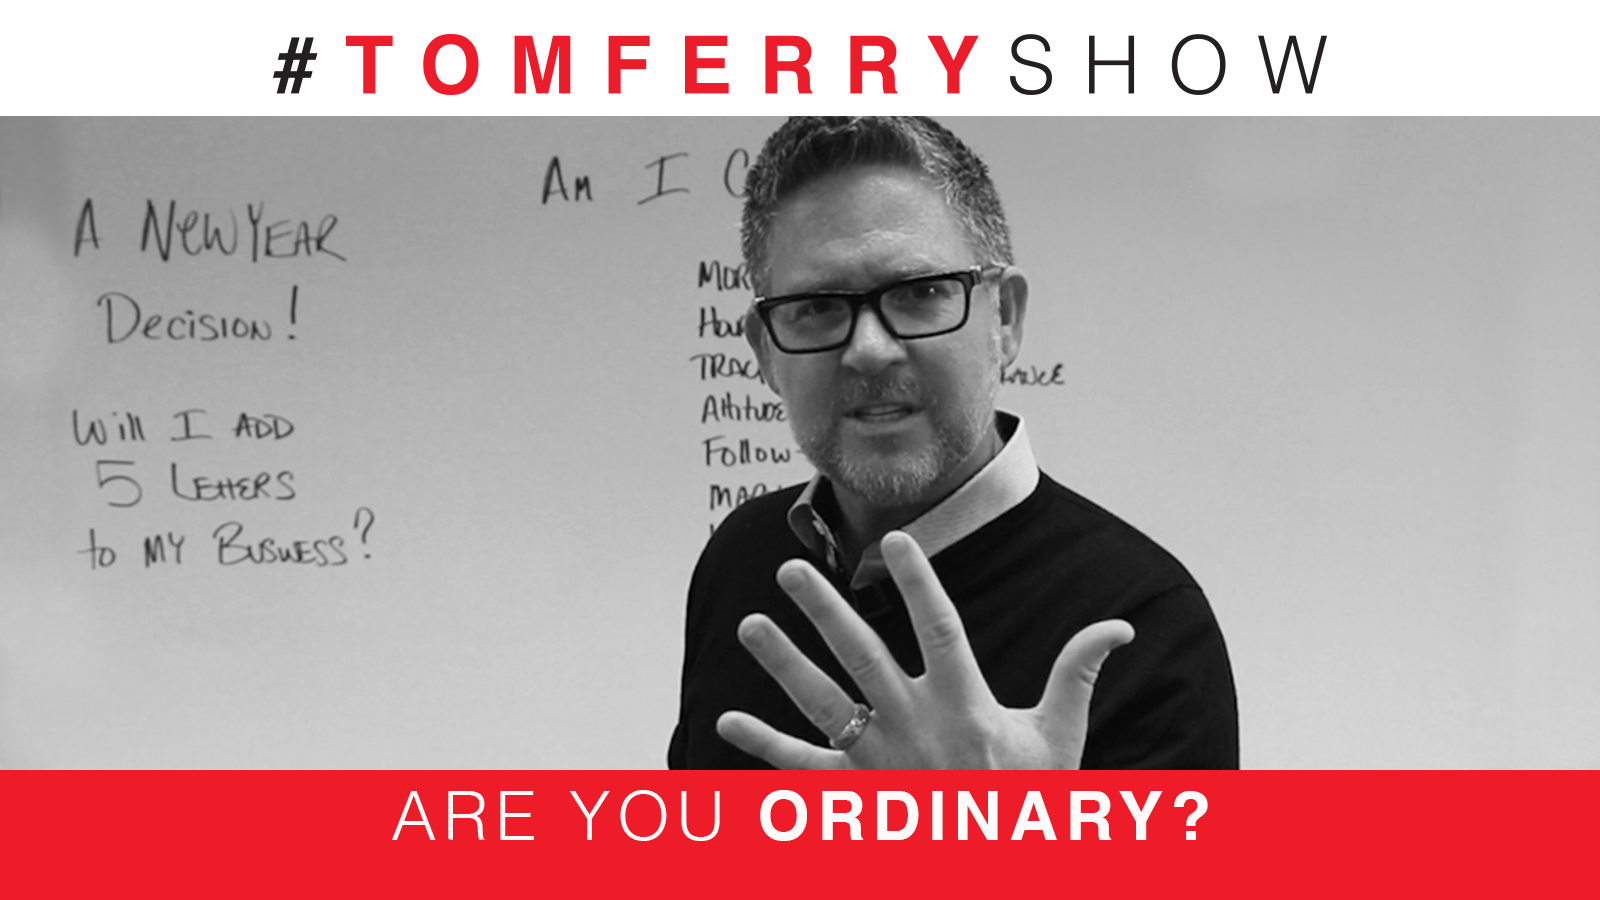 Add These 5 Letters To Your Business! | #TomFerryShow Episode 97